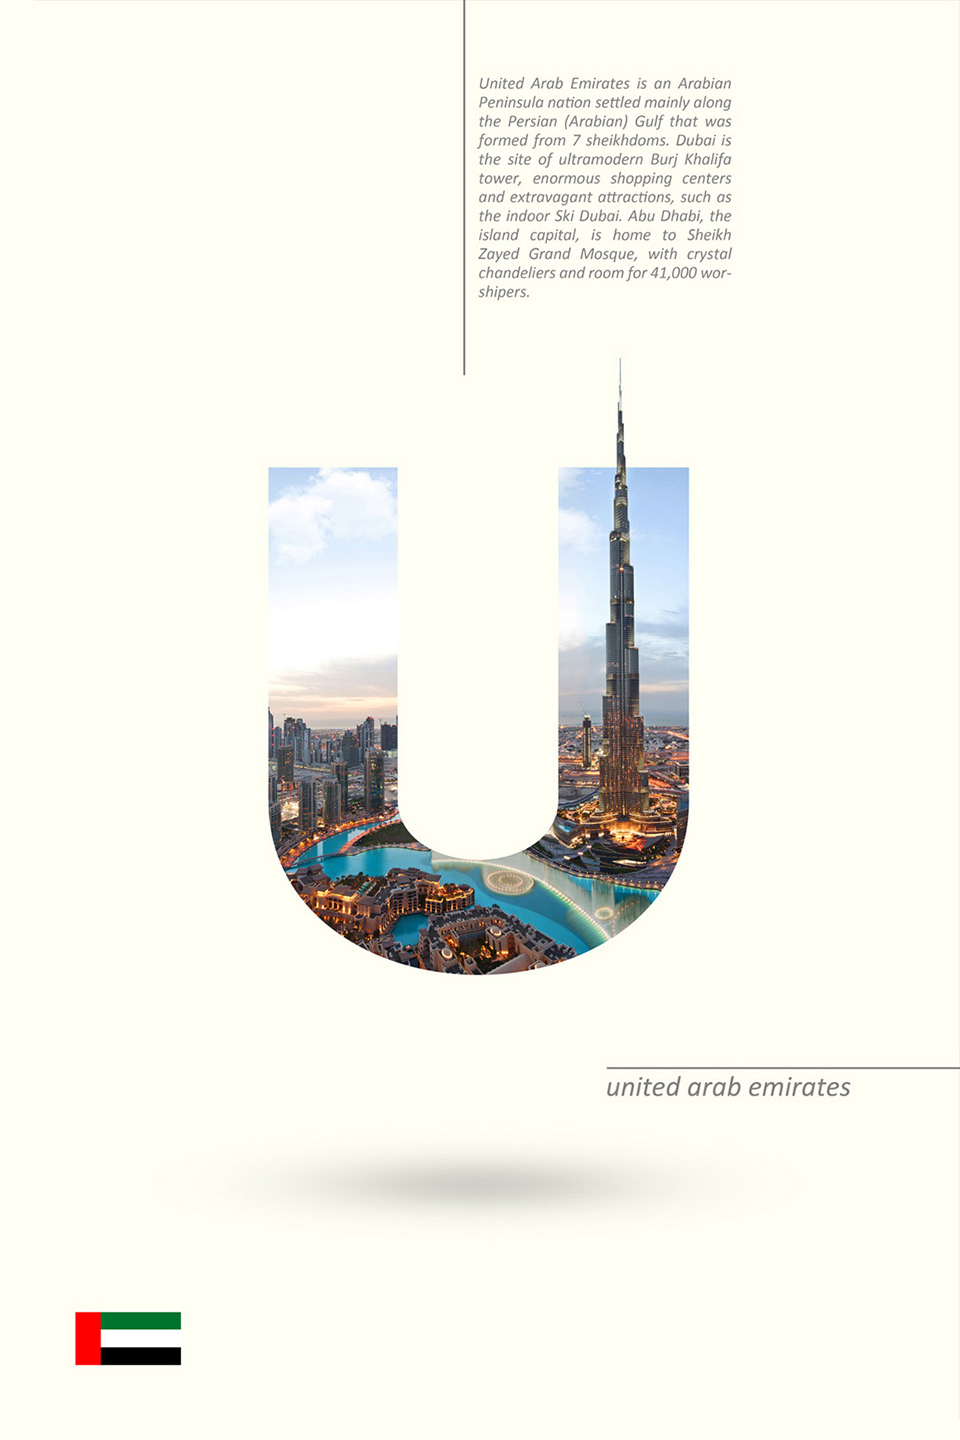 Beautiful Alphabet Series Of Countries And Their Iconic Landmarks - UAE